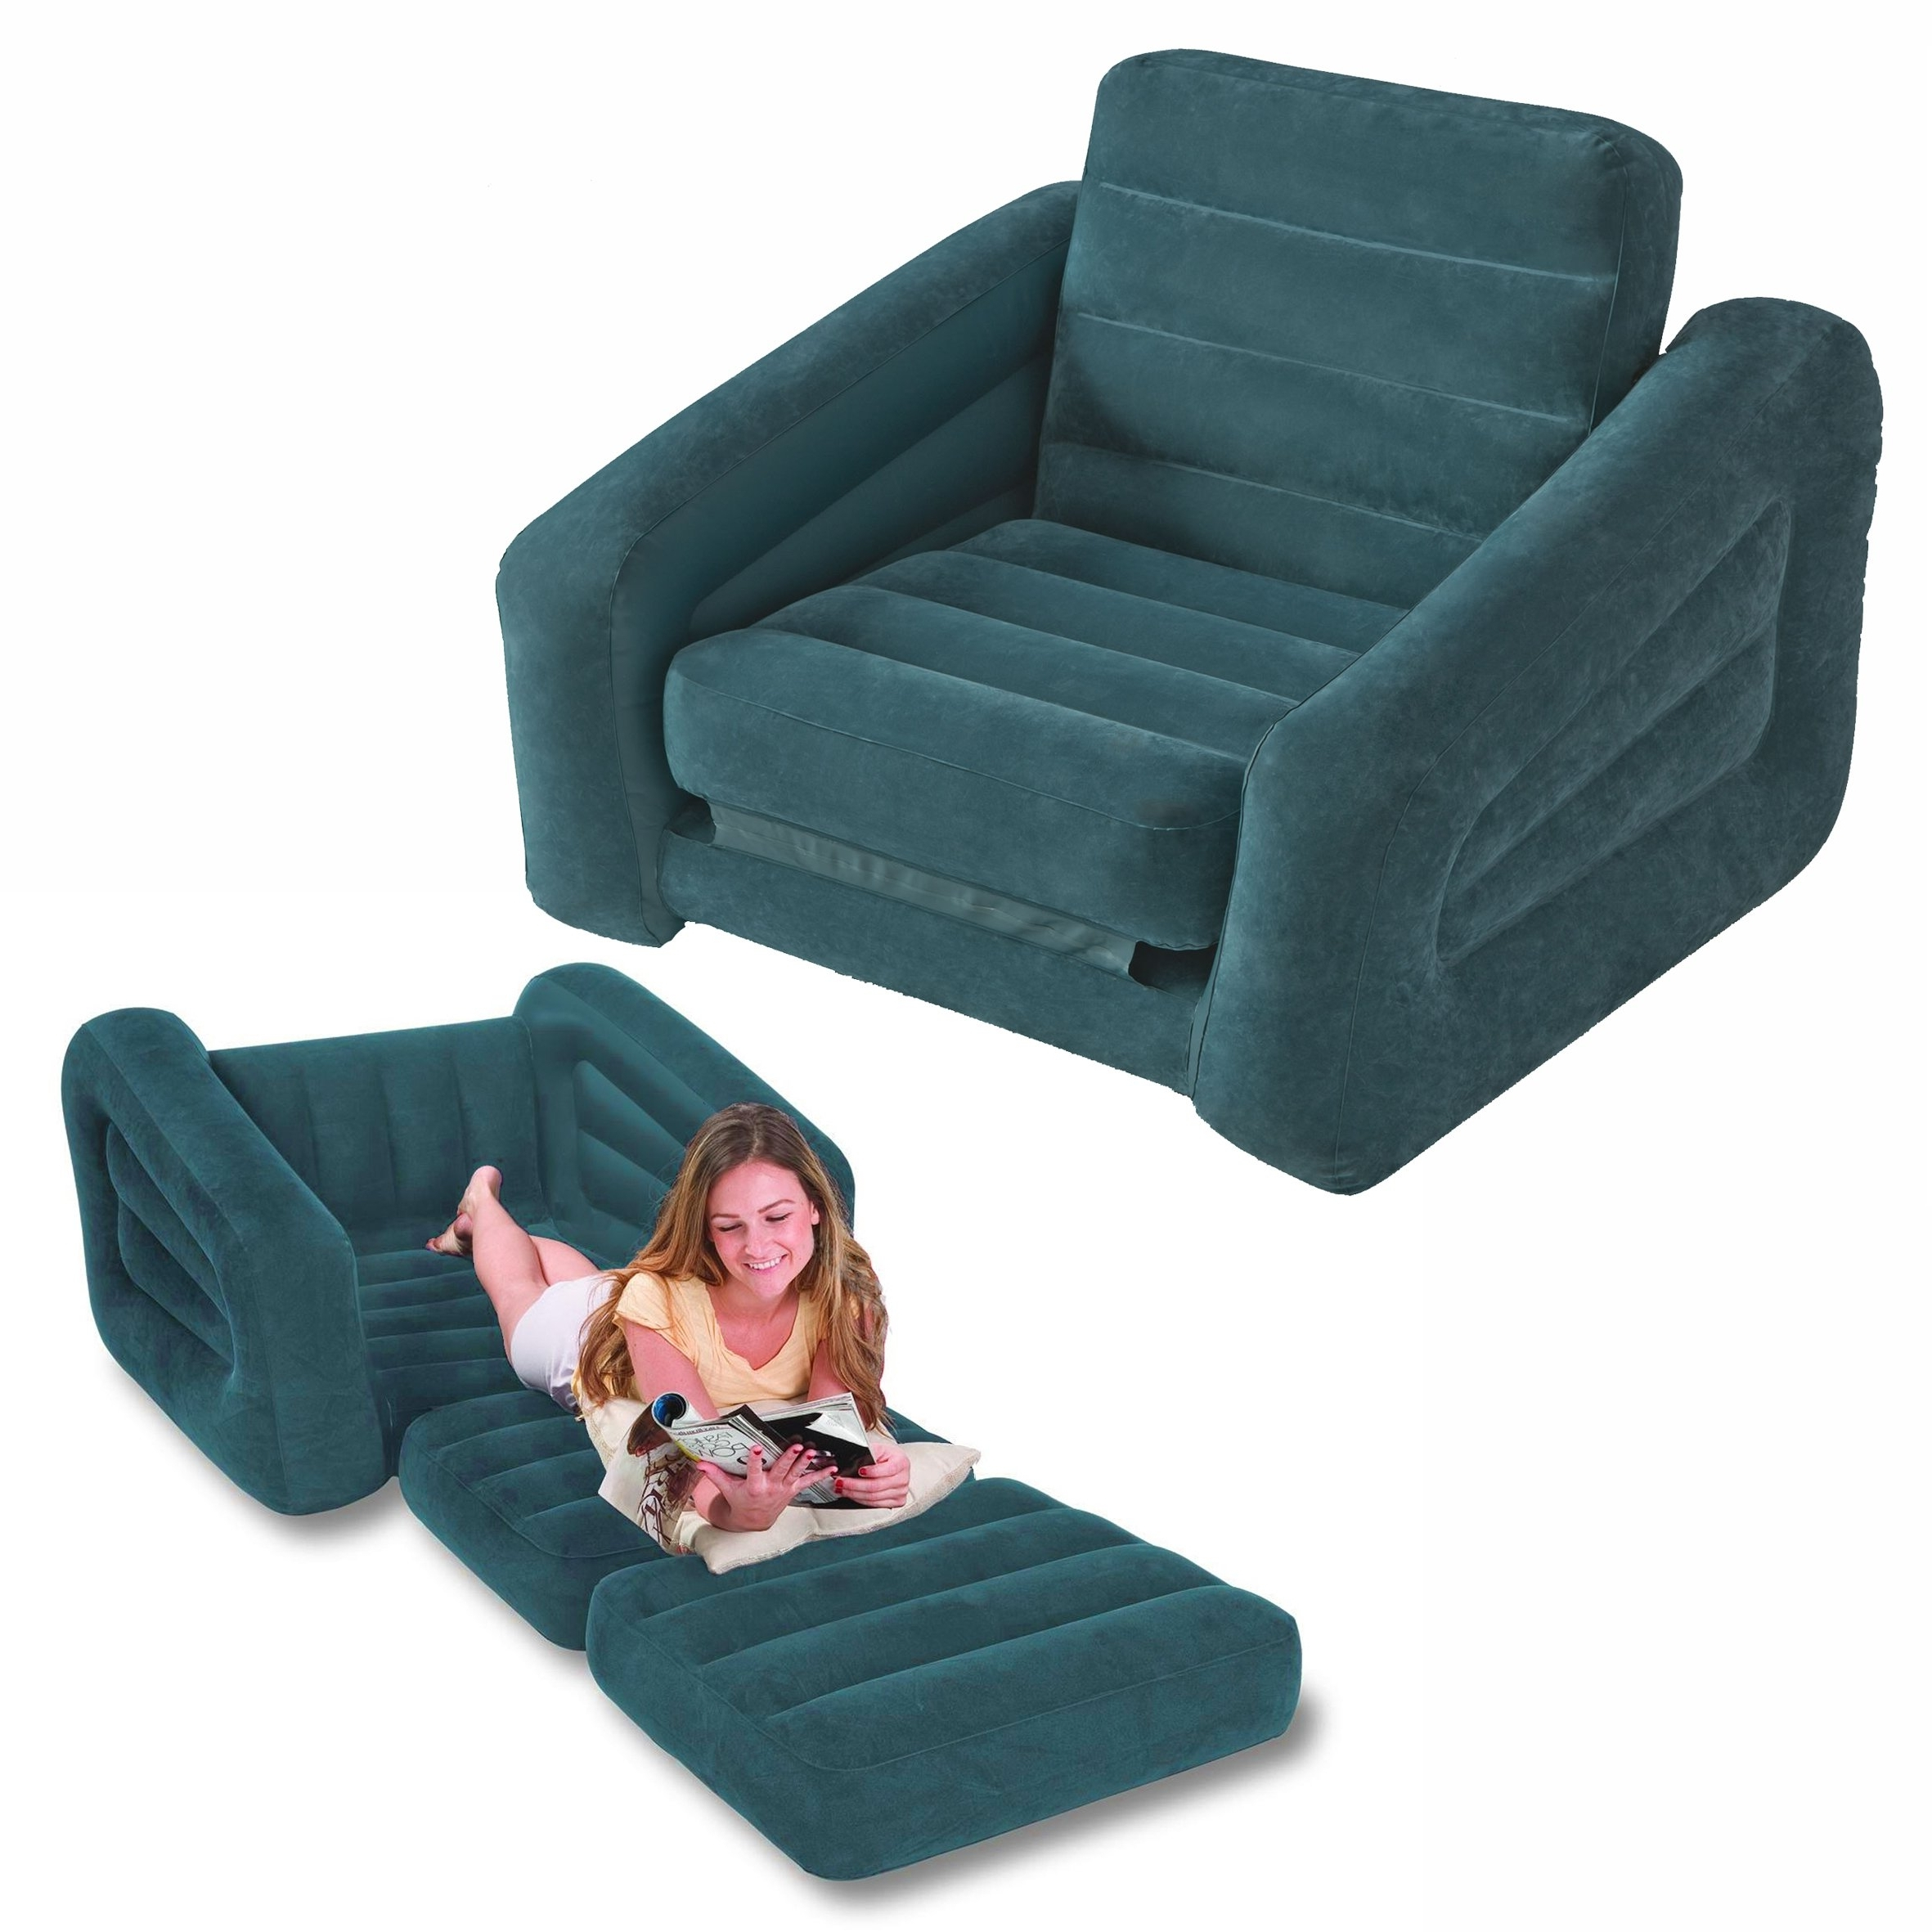 Intex One Person Inflatable Pull Out Chair Bed Sofa Bed #68565 Pertaining To Current Inflatable Sofas And Chairs (View 12 of 15)